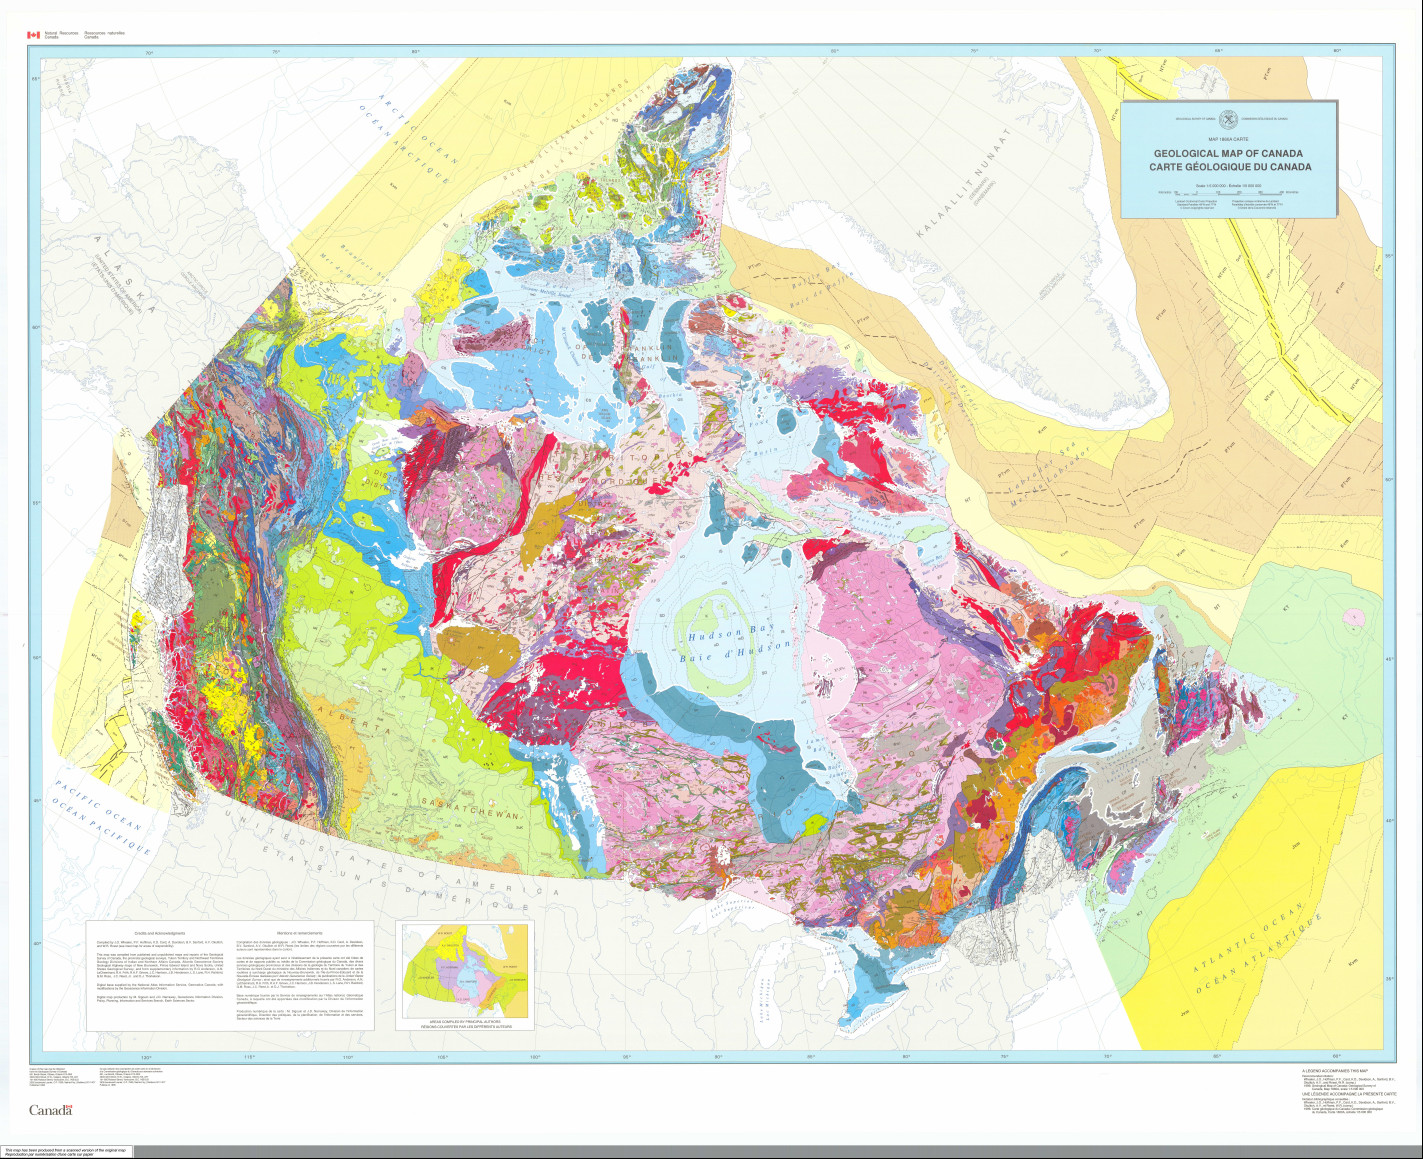 new geological map of canada 1996